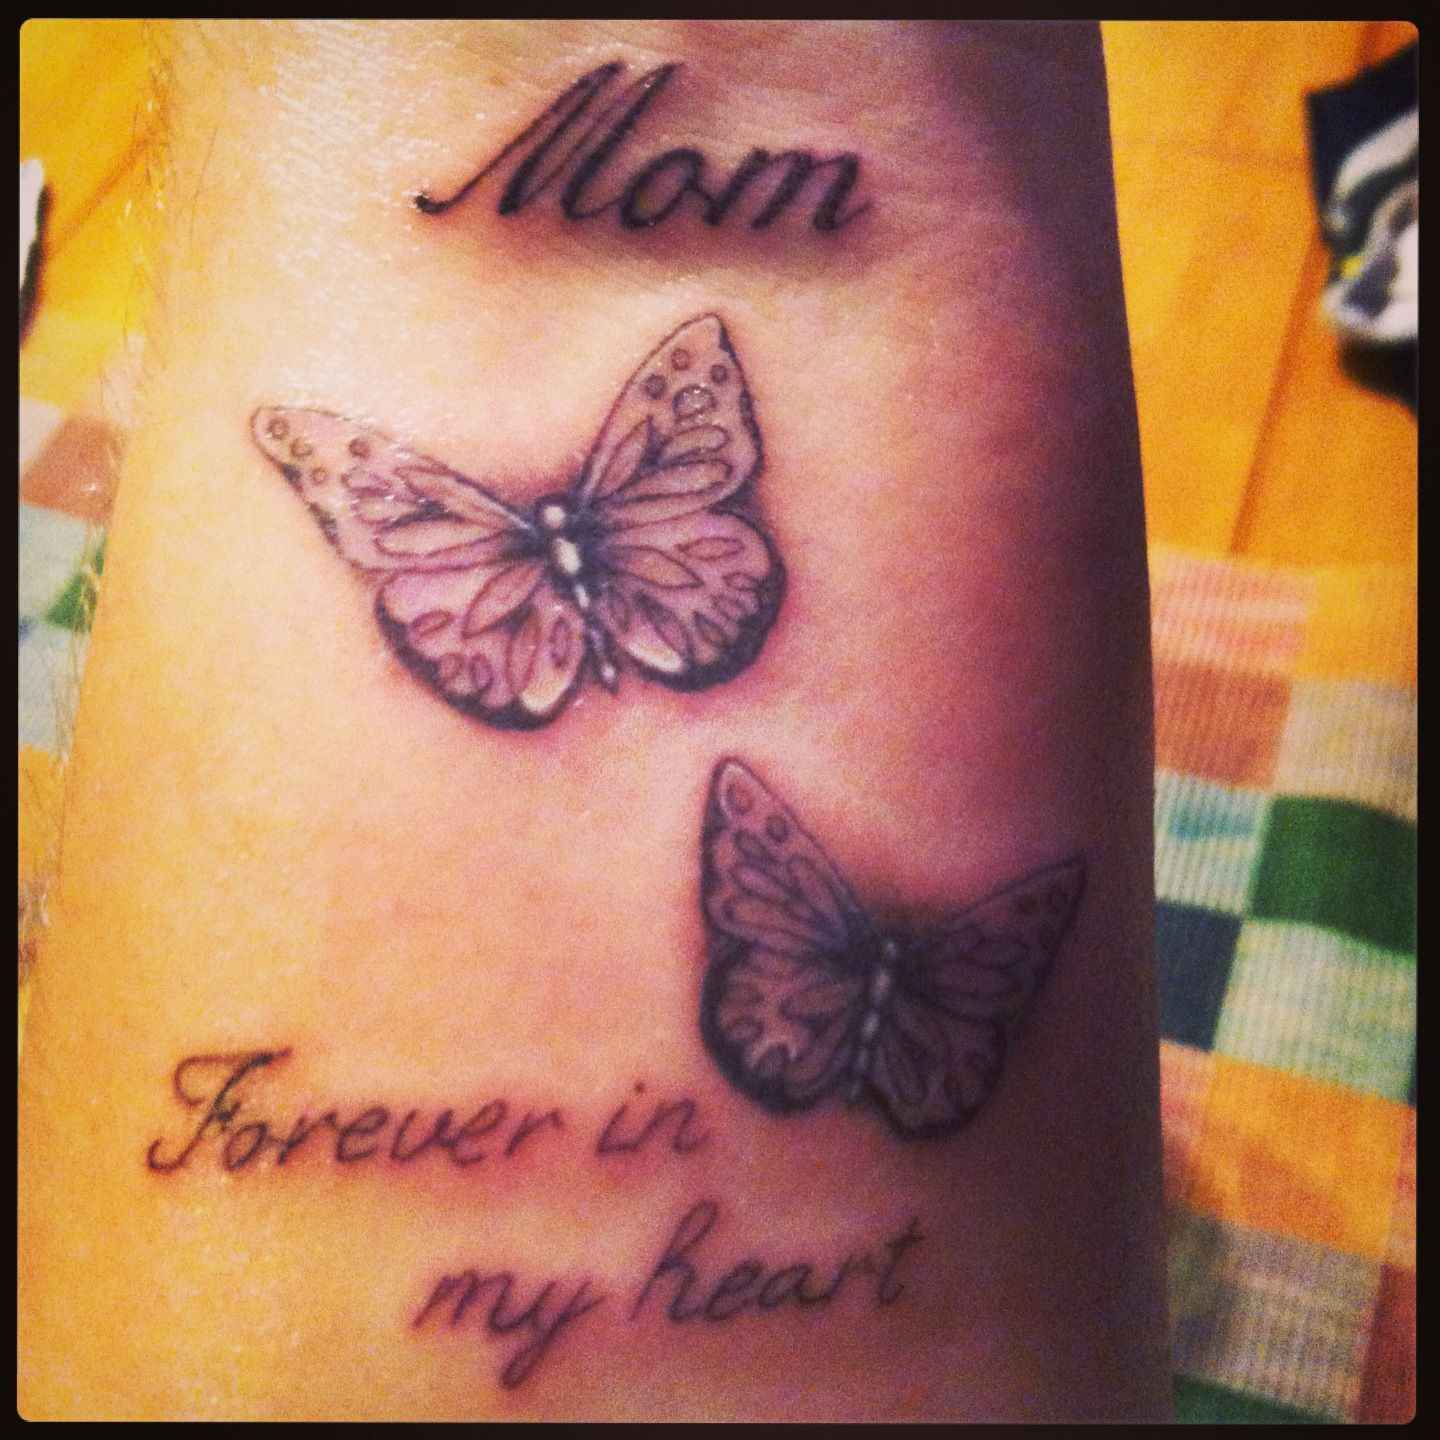 50 Remembrance Tattoos For Mom: Tattoo In Memory Of My Mom